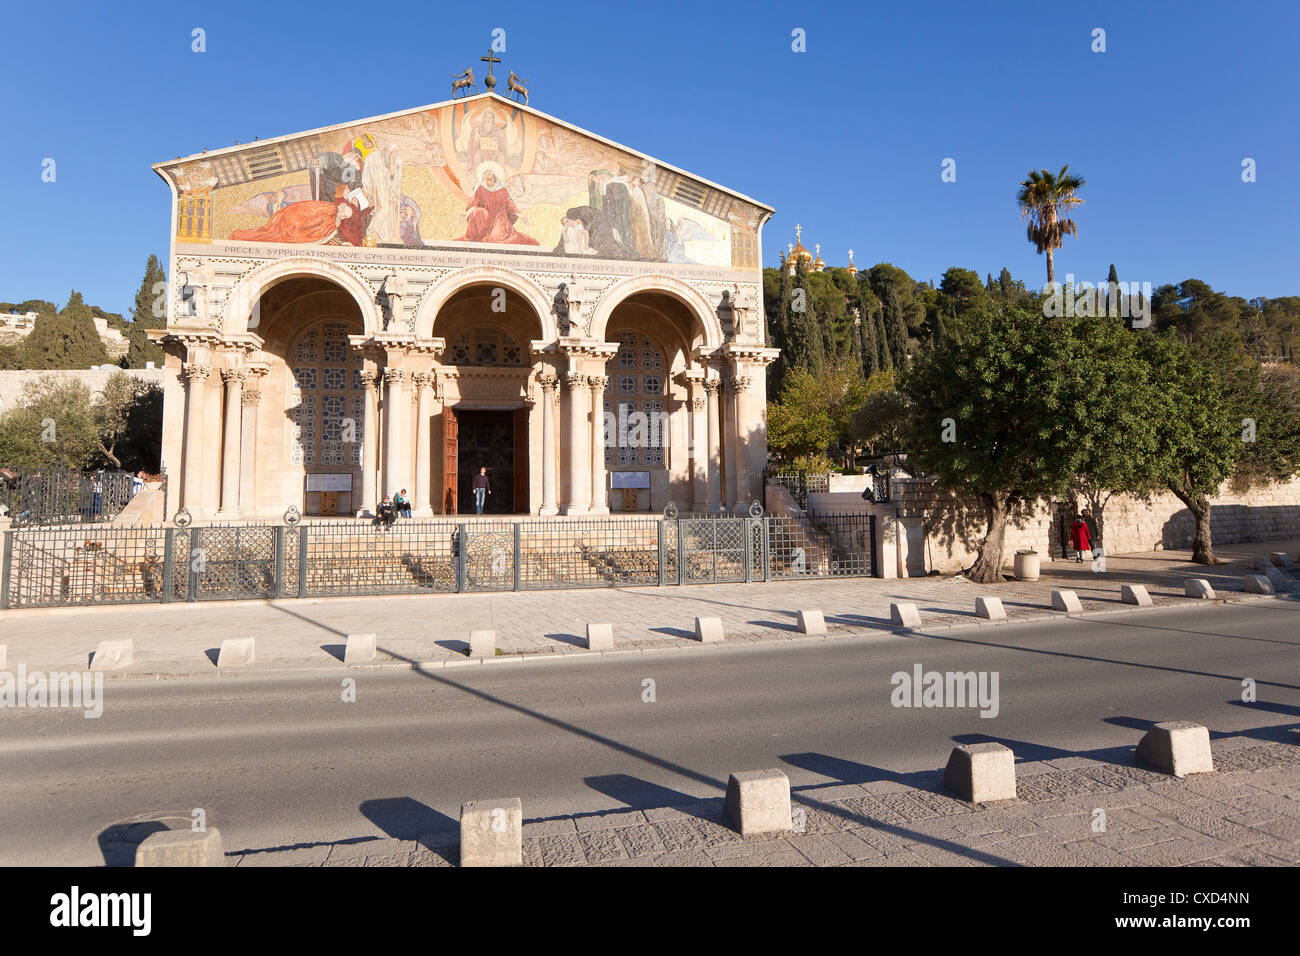 The Church of All Nations, Mount of Olives, Jerusalem, Israel, Middle East - Stock Image